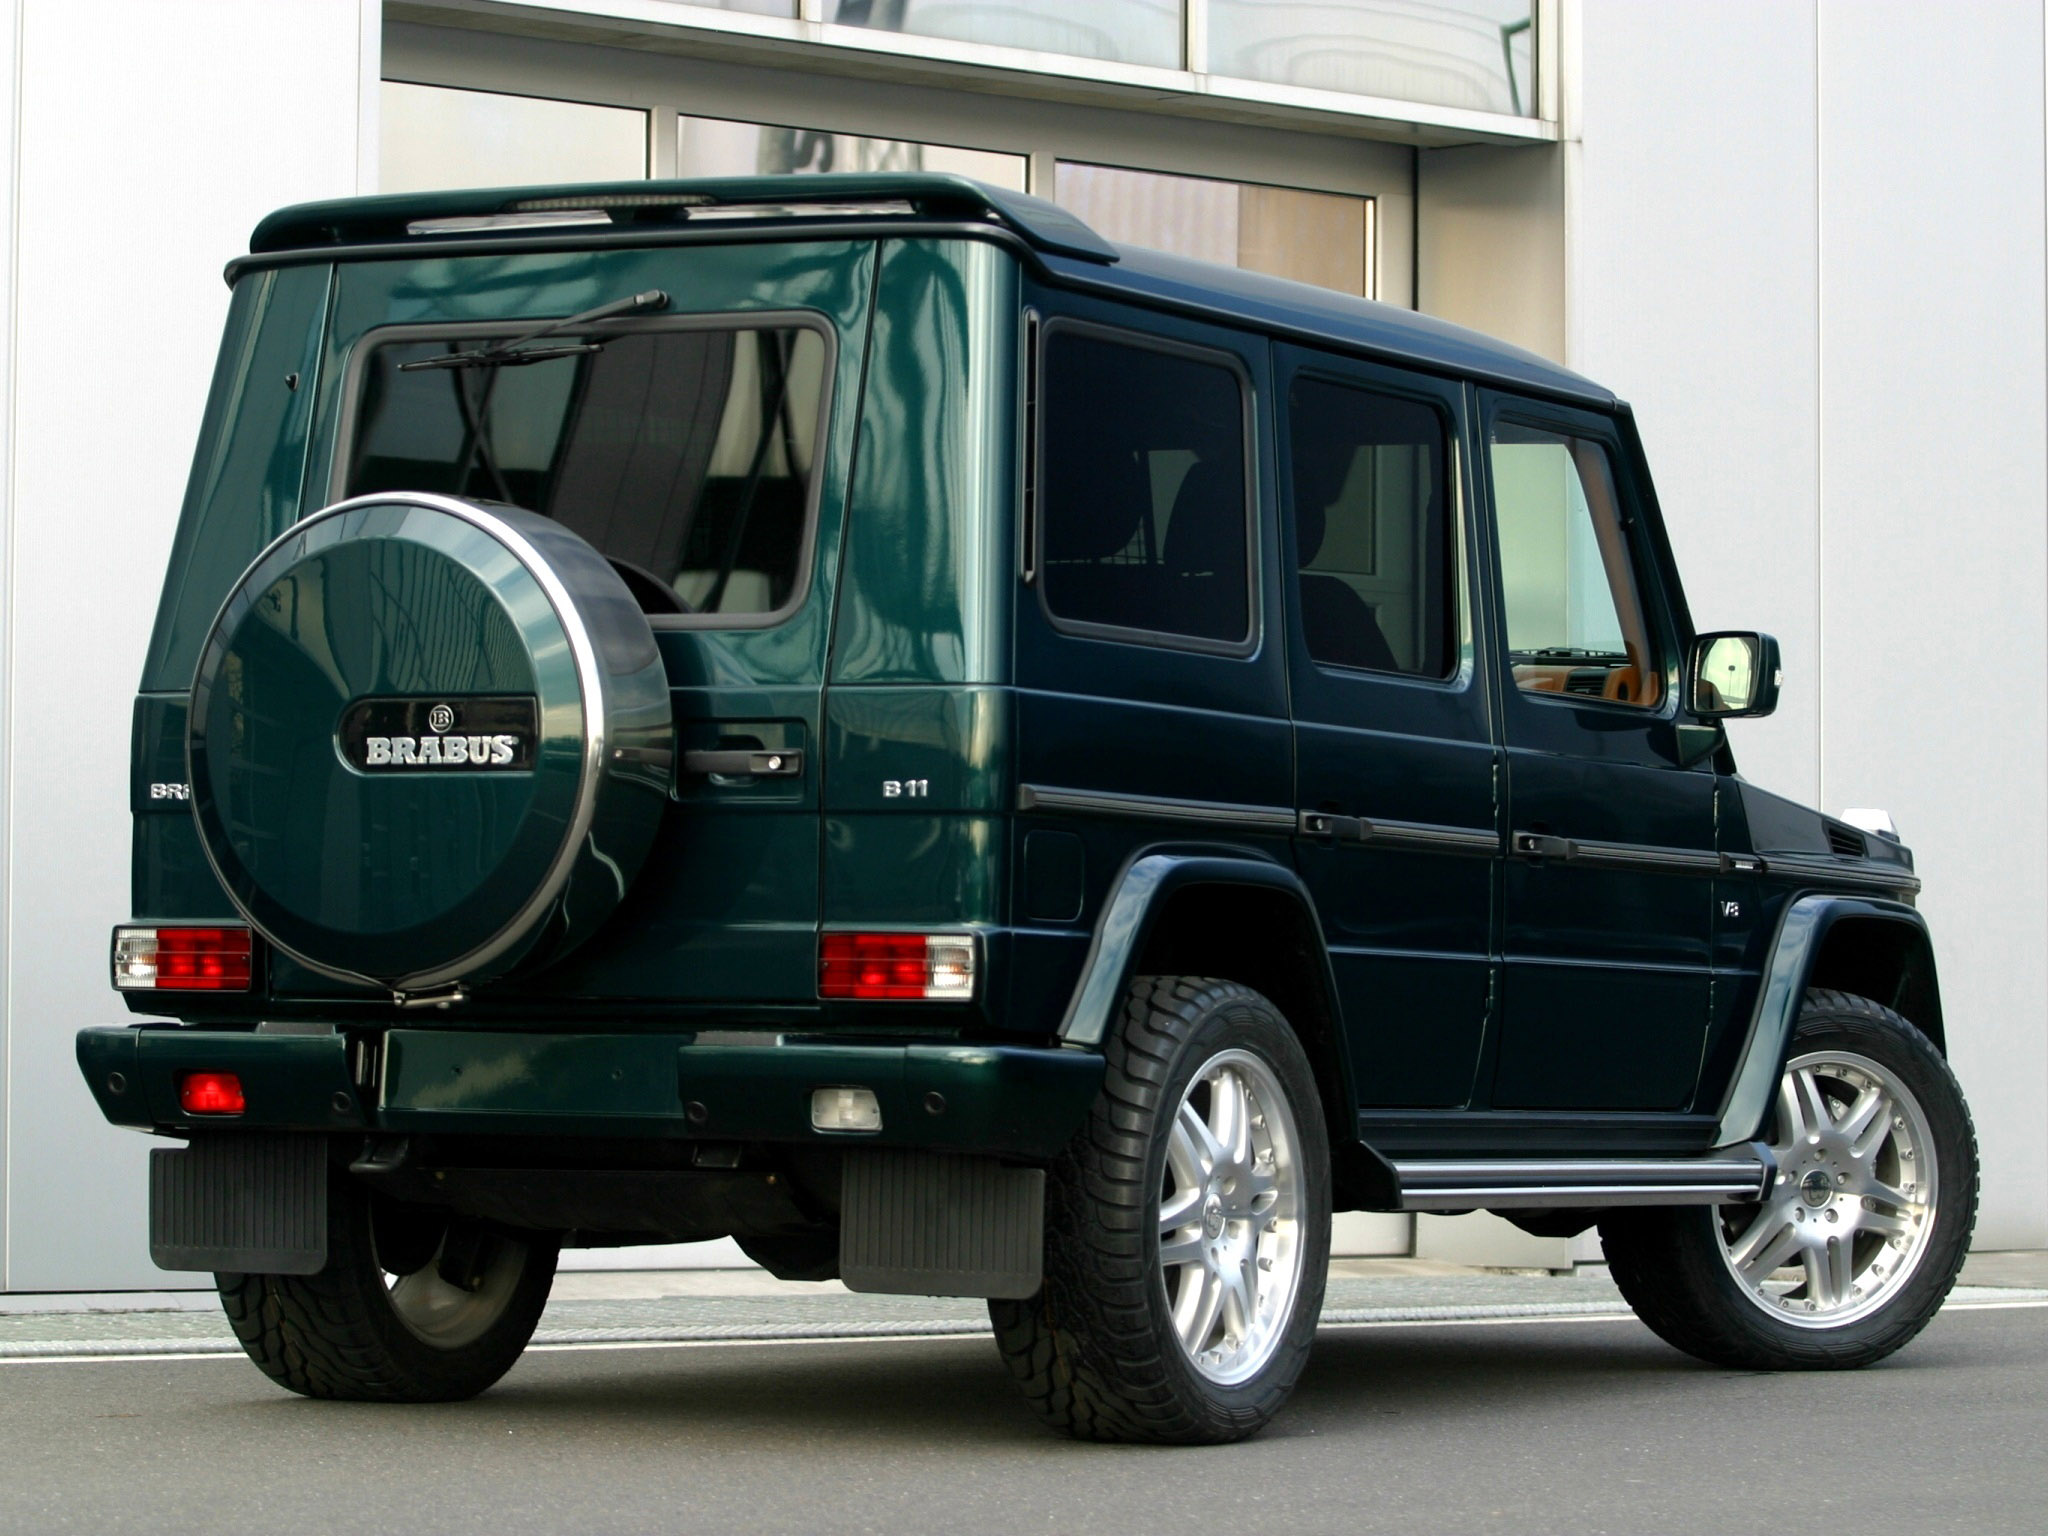 brabus mercedes g klasse 5 door w463 brabus mercedes g. Black Bedroom Furniture Sets. Home Design Ideas